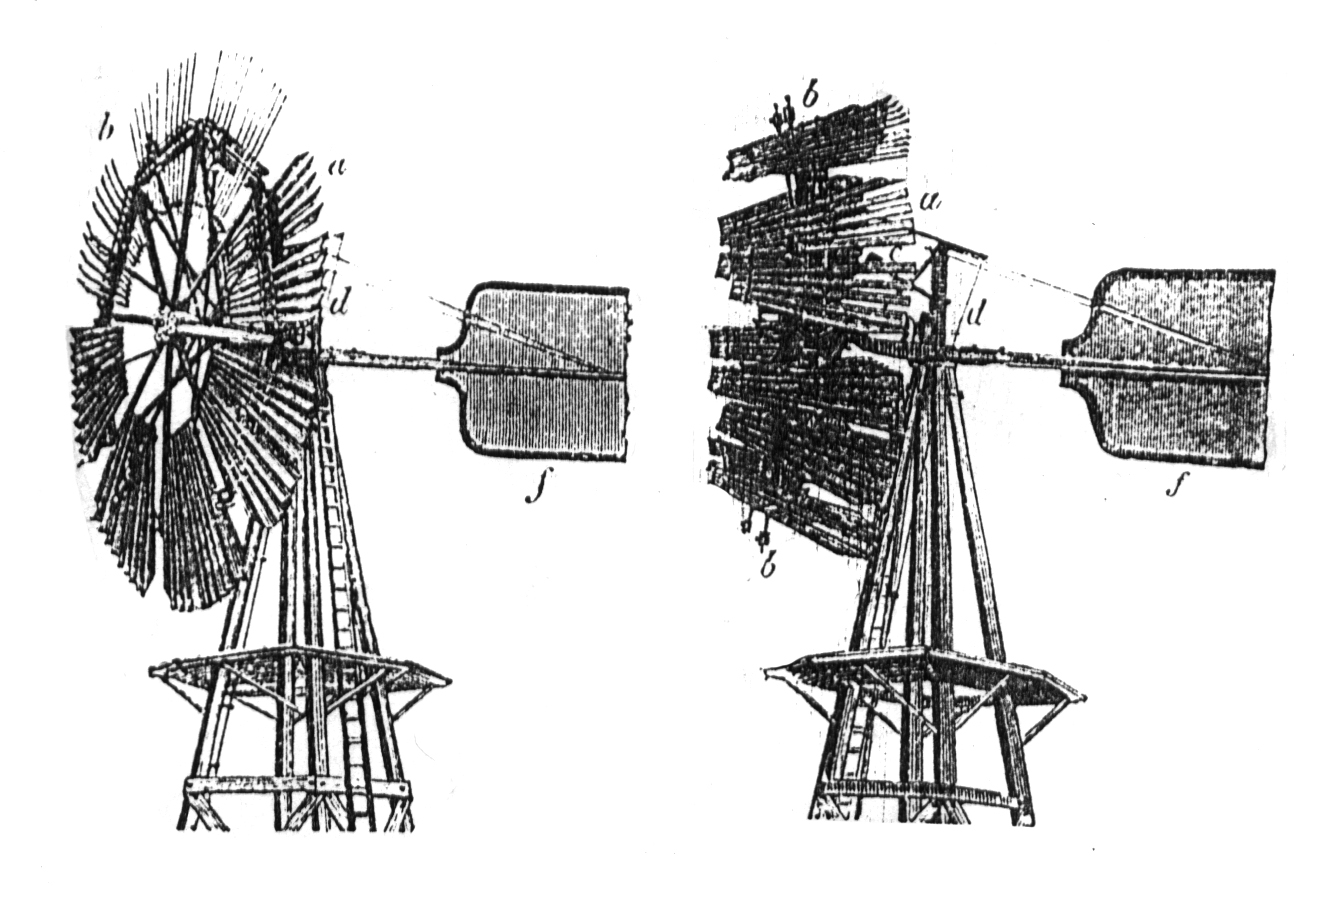 History Of Us Wind Energy Department Generator Motor Together With Home Turbine Diagram In Engine Company Established